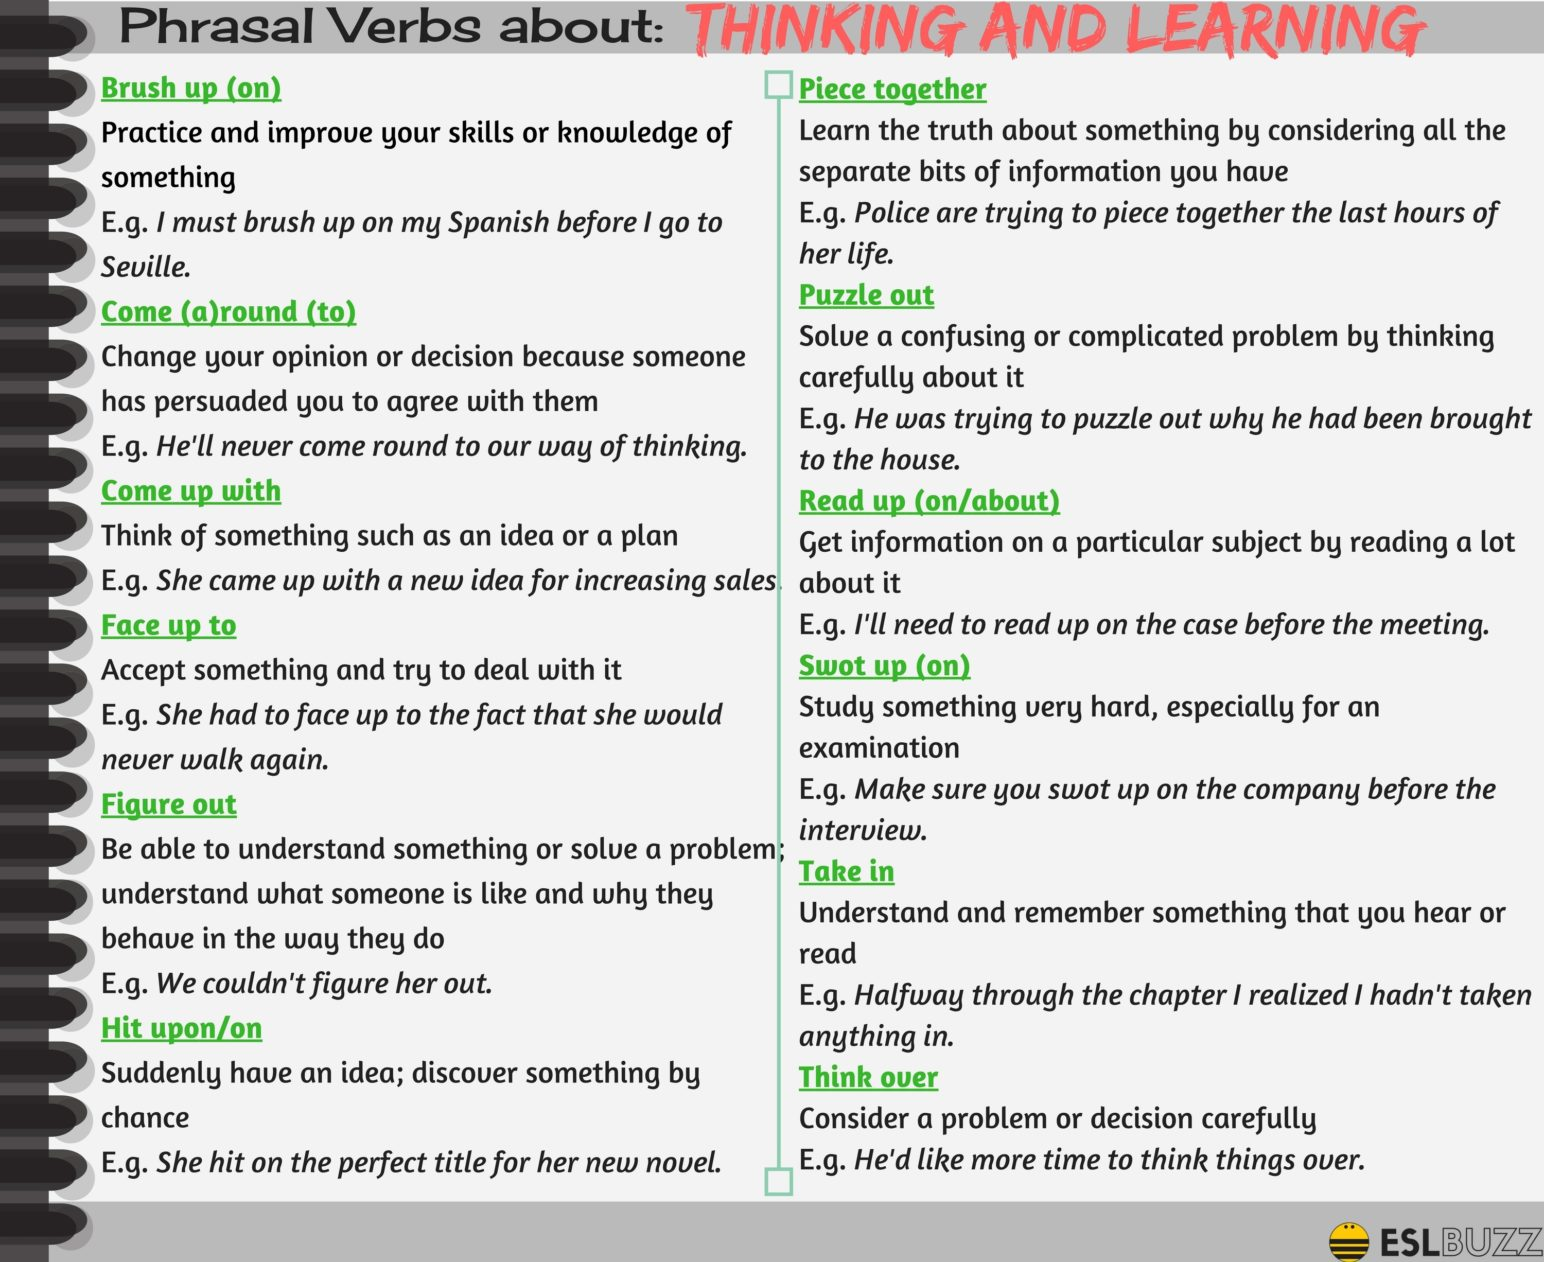 English Phrasal Verbs for Communication 2